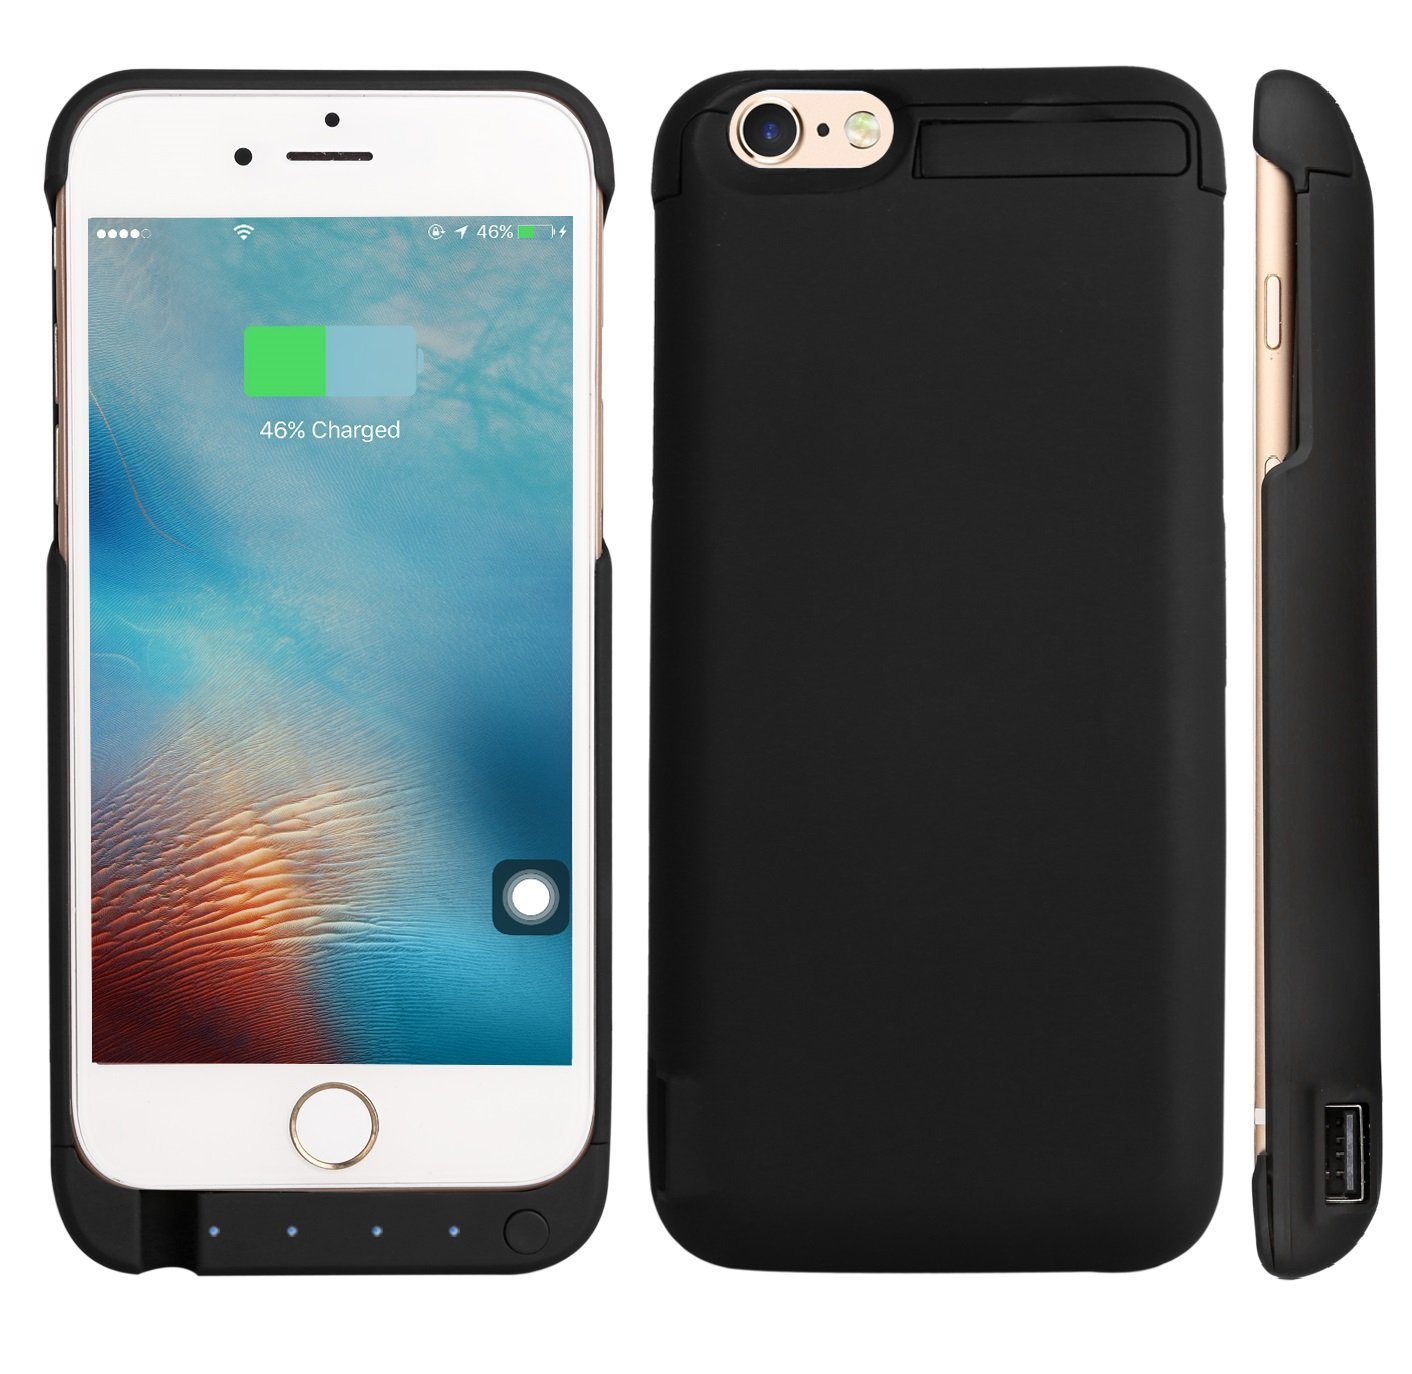 new products ddfb0 22f96 Buy iPhone 6/ 6S Battery Case, High Capacity 7000 mAh Extended Power ...